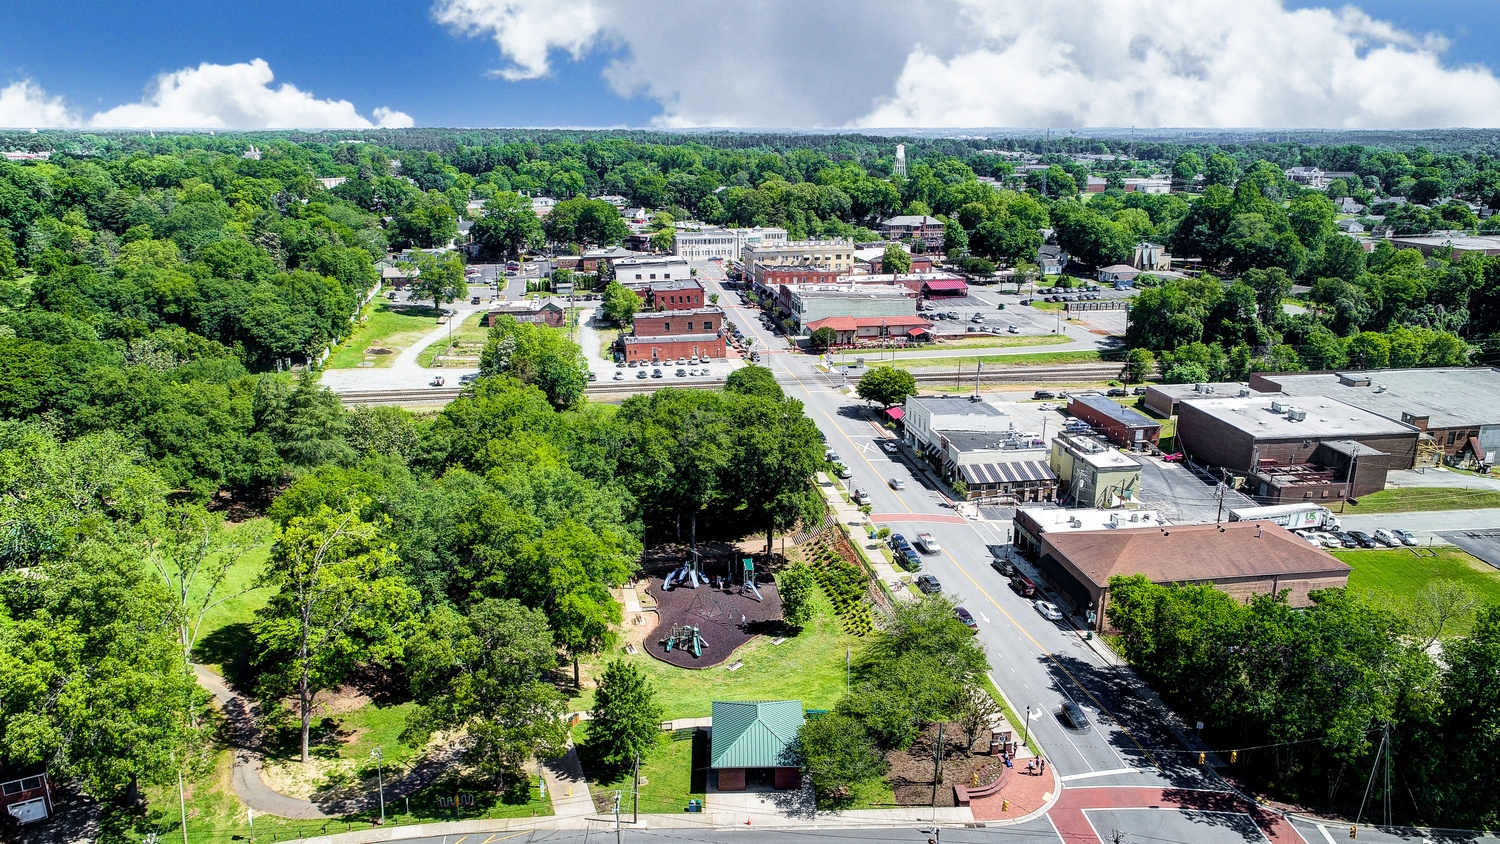 Downtown Belmont Aerial View